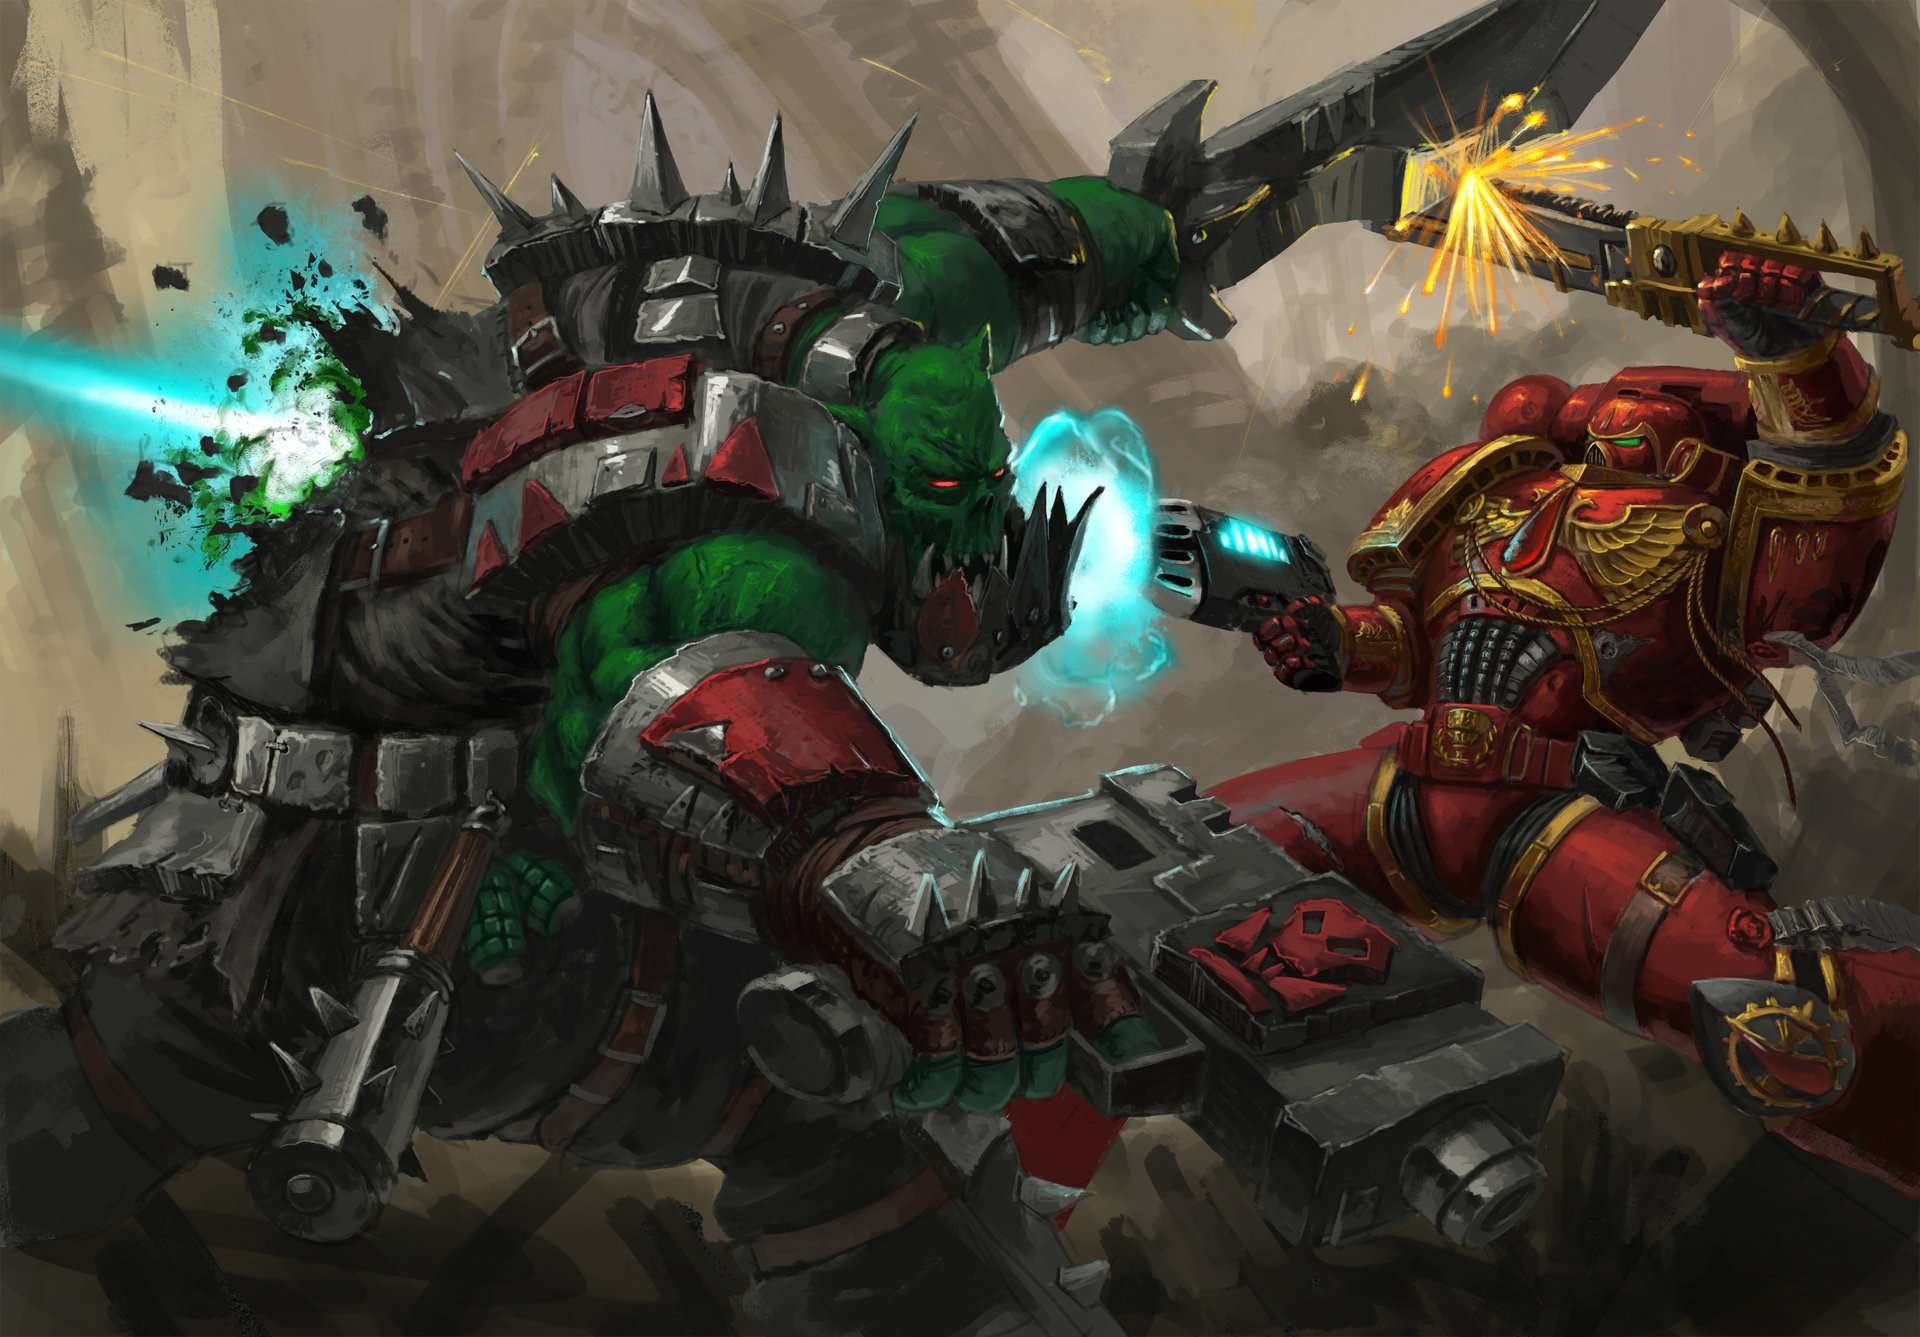 [W40K] Collection d'images : Warhammer 40K divers et inclassables - Page 4 3d0e7510